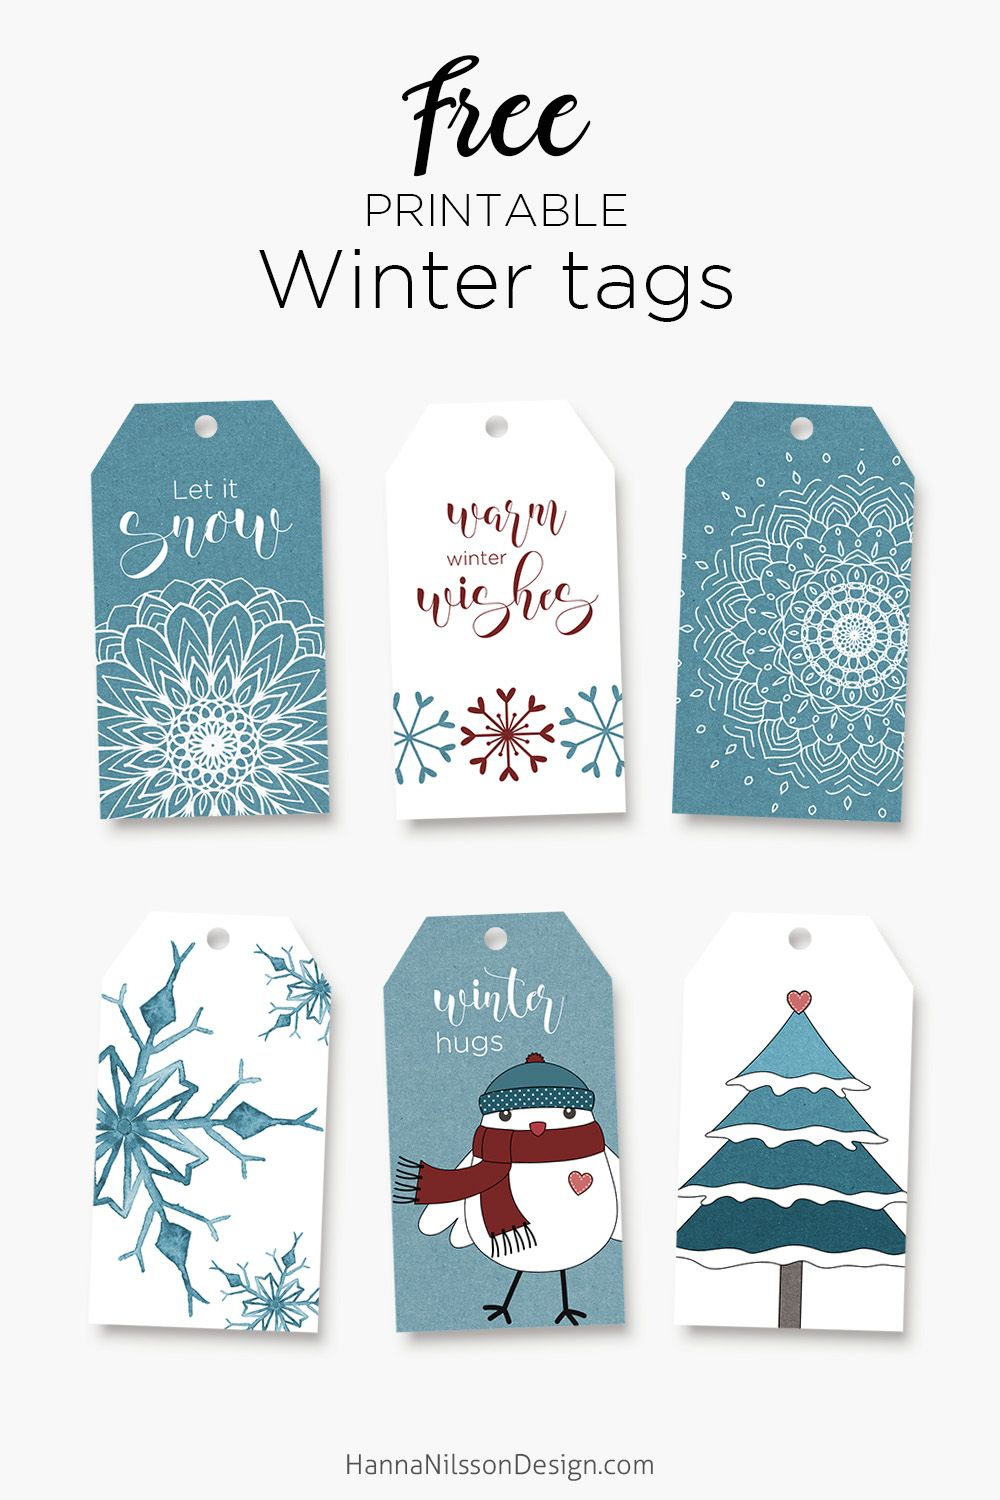 Free winter printables tags cards boxes free winter printables tags cards boxes paper crafts handmade gifts homemade diy paper sewing fabric wood do it solutioingenieria Images